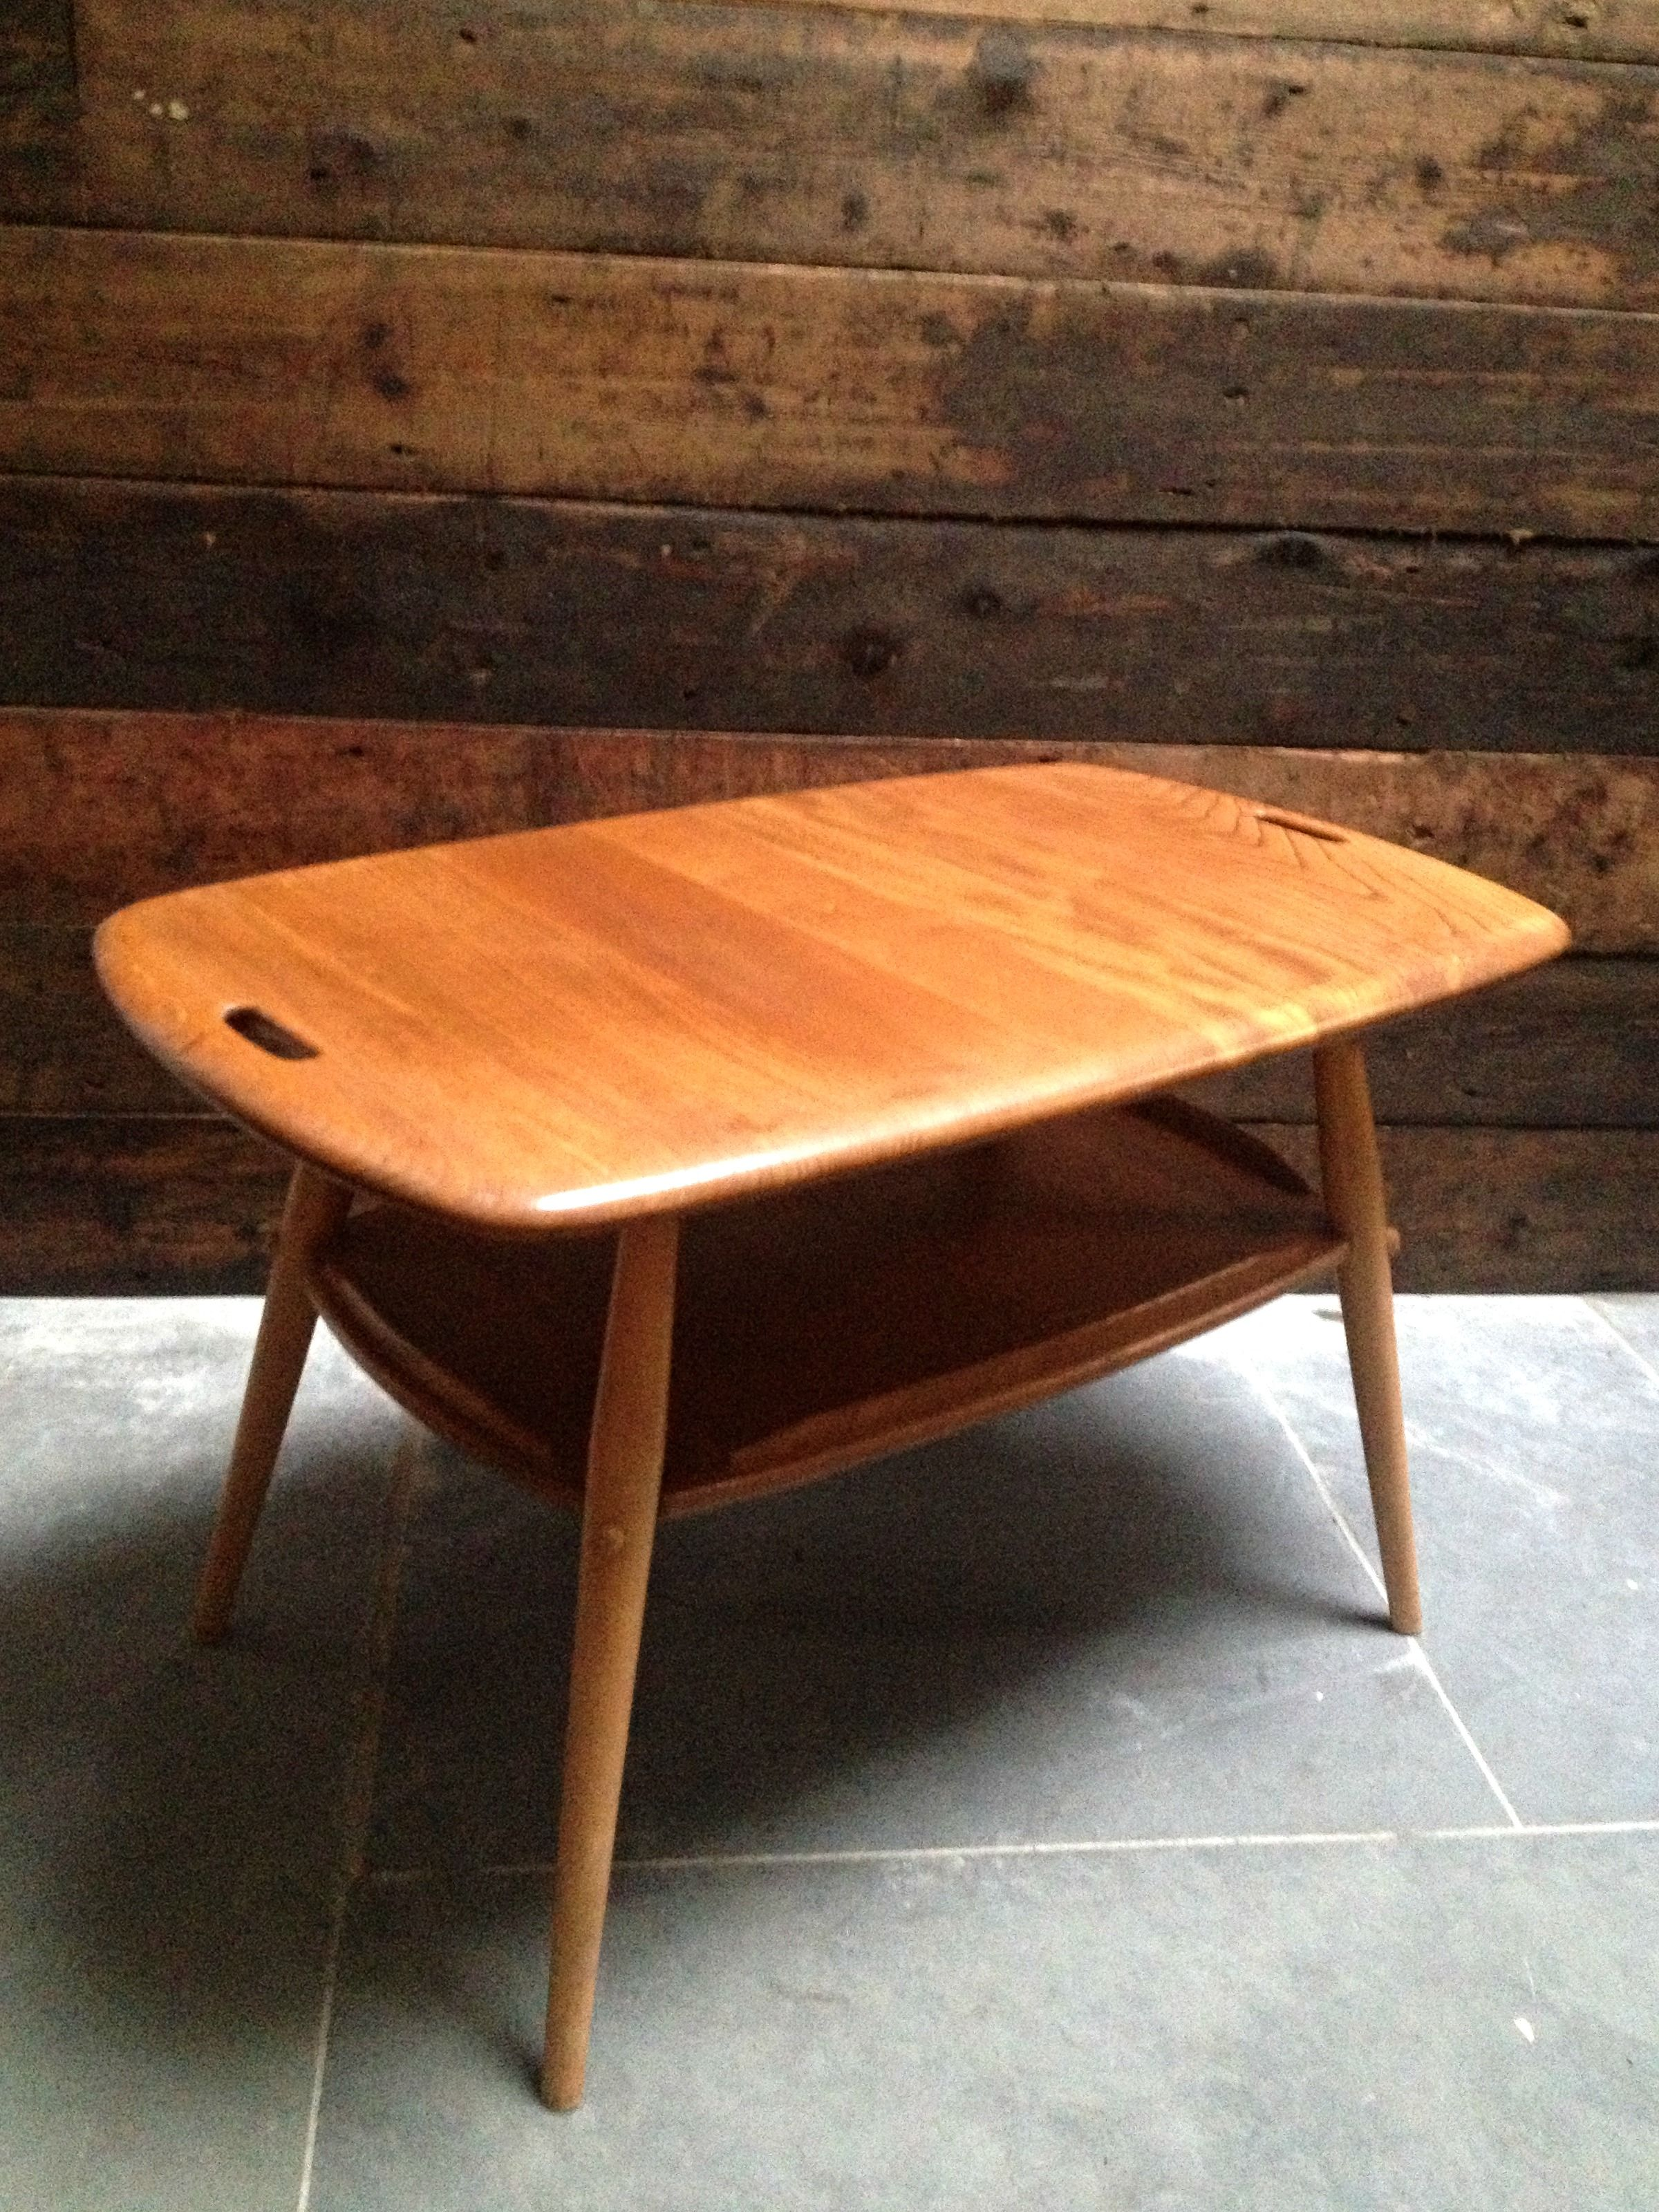 Designed By Lucian Ercolani The Ercol Two Tier Butler Table Is